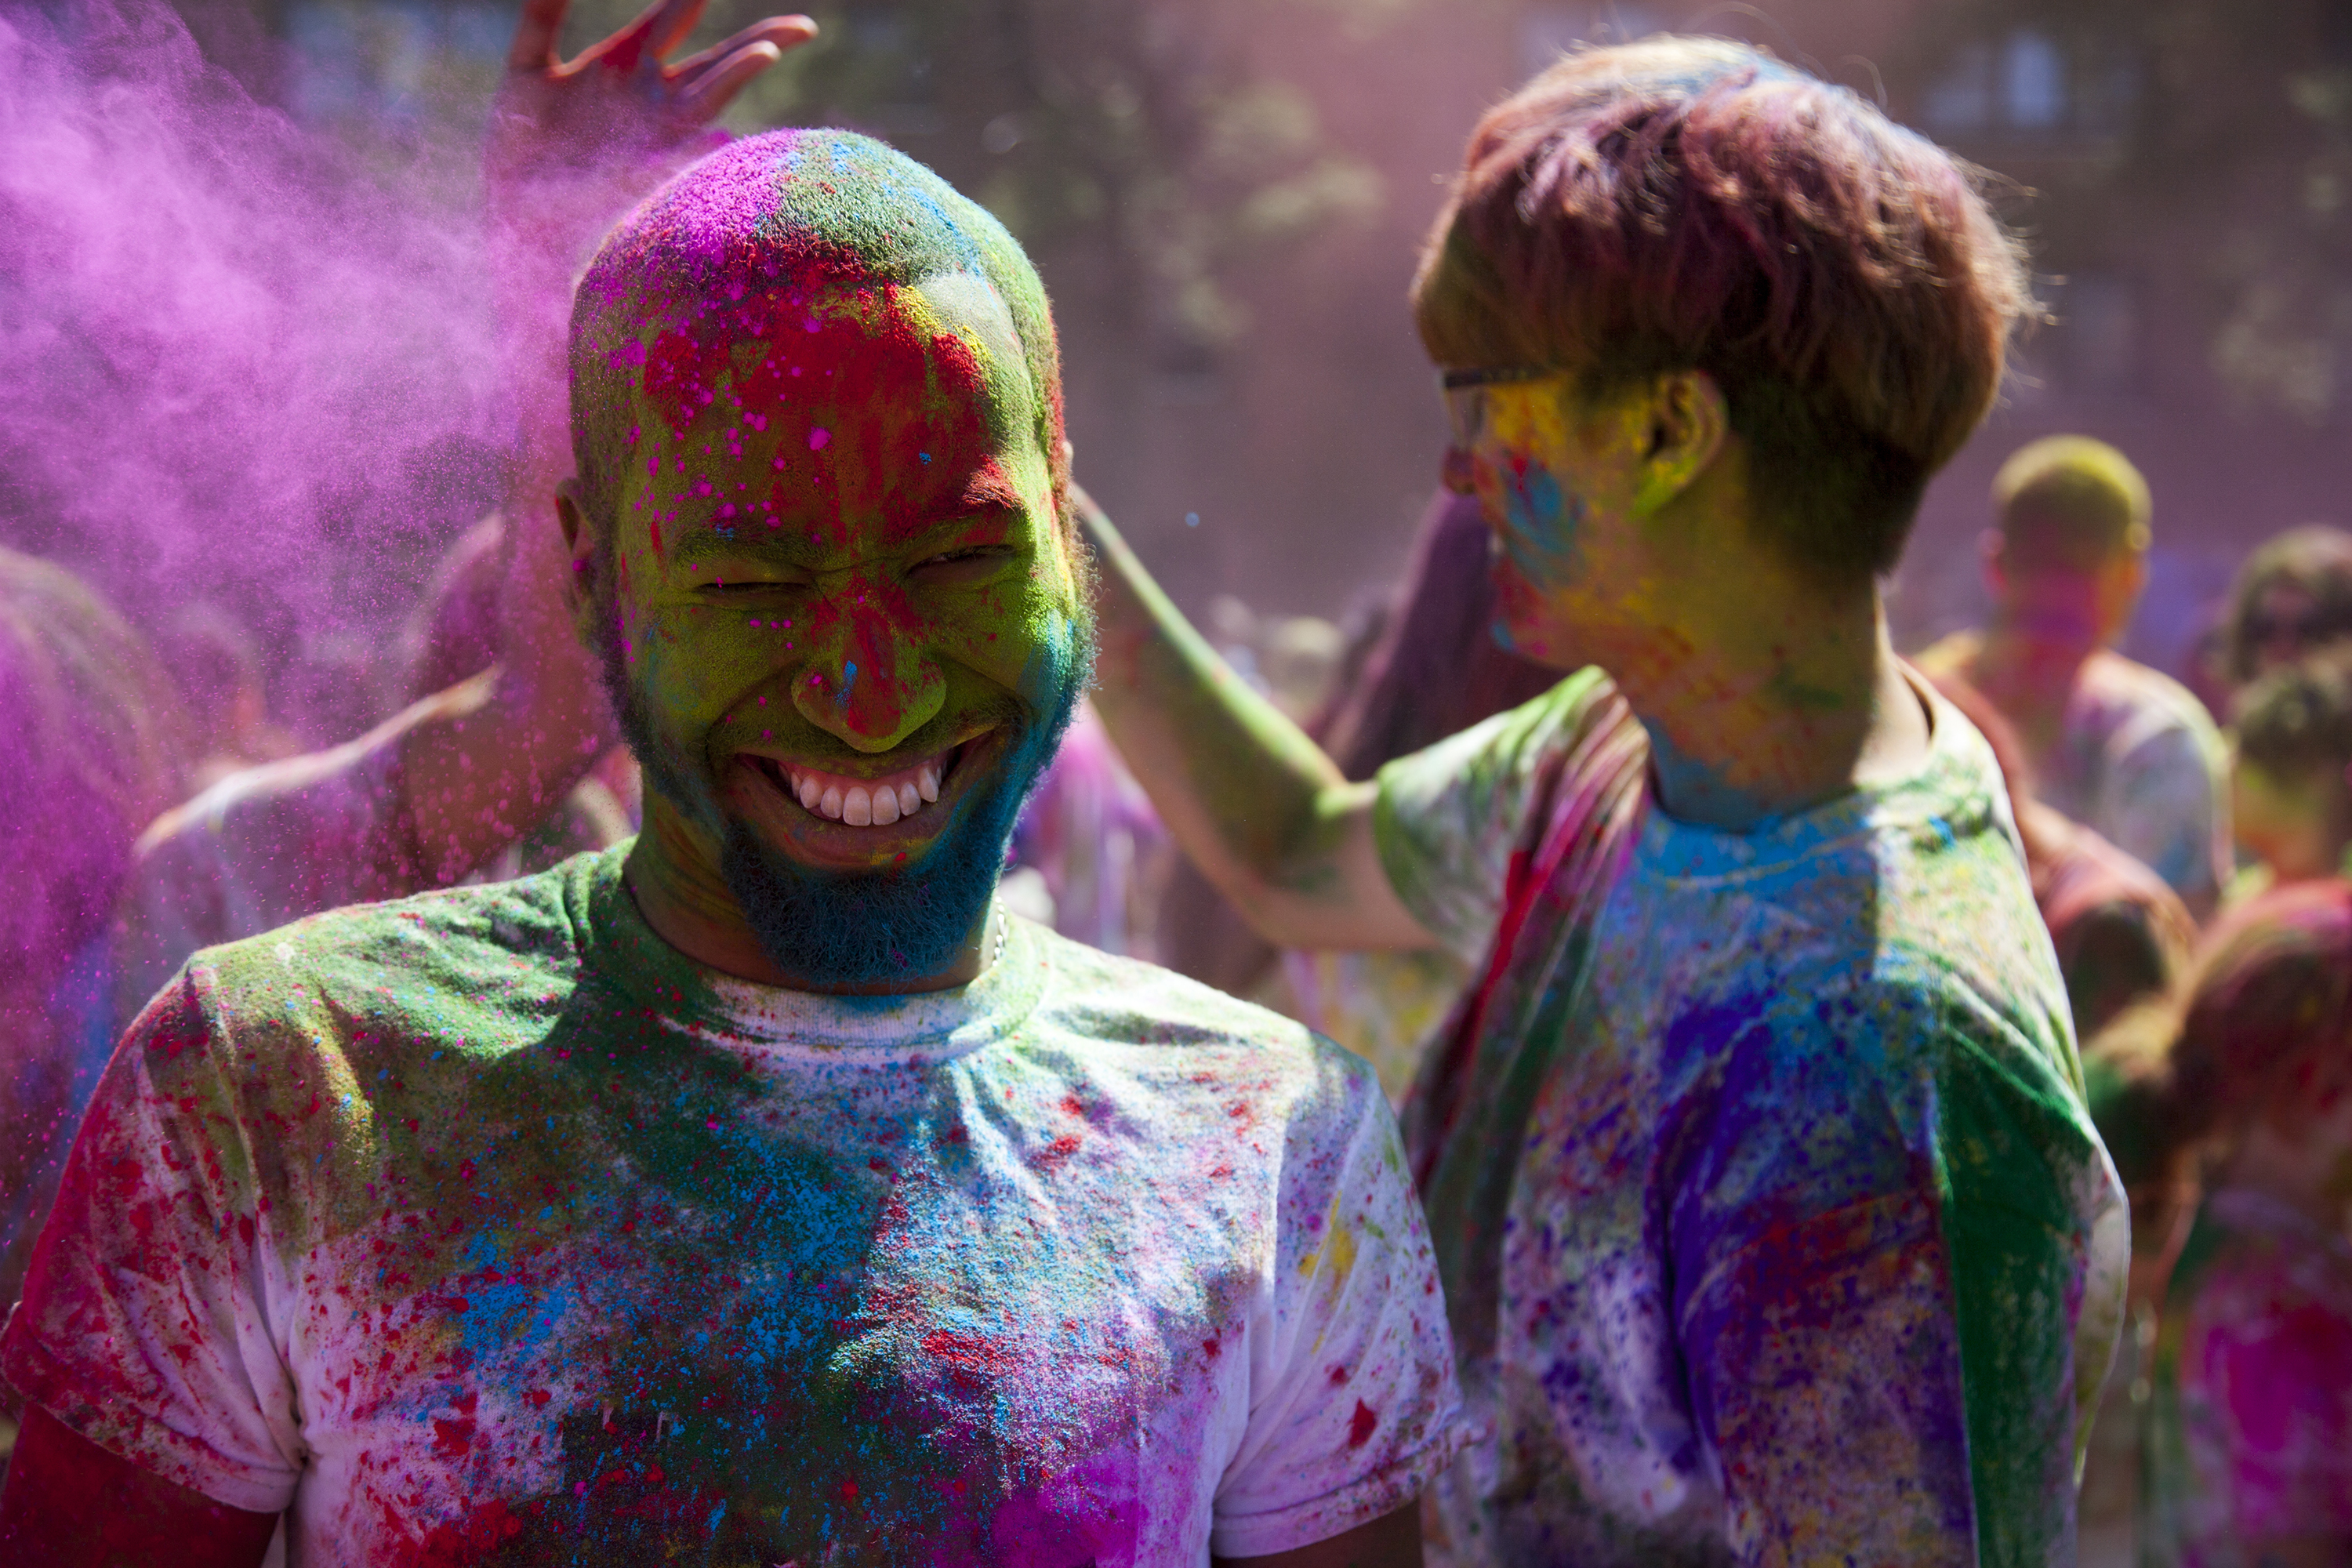 Patrick Bernabela, above, braces as purple powder is thrown on him during Holi. ERIC SCHMID/THE STATESMAN